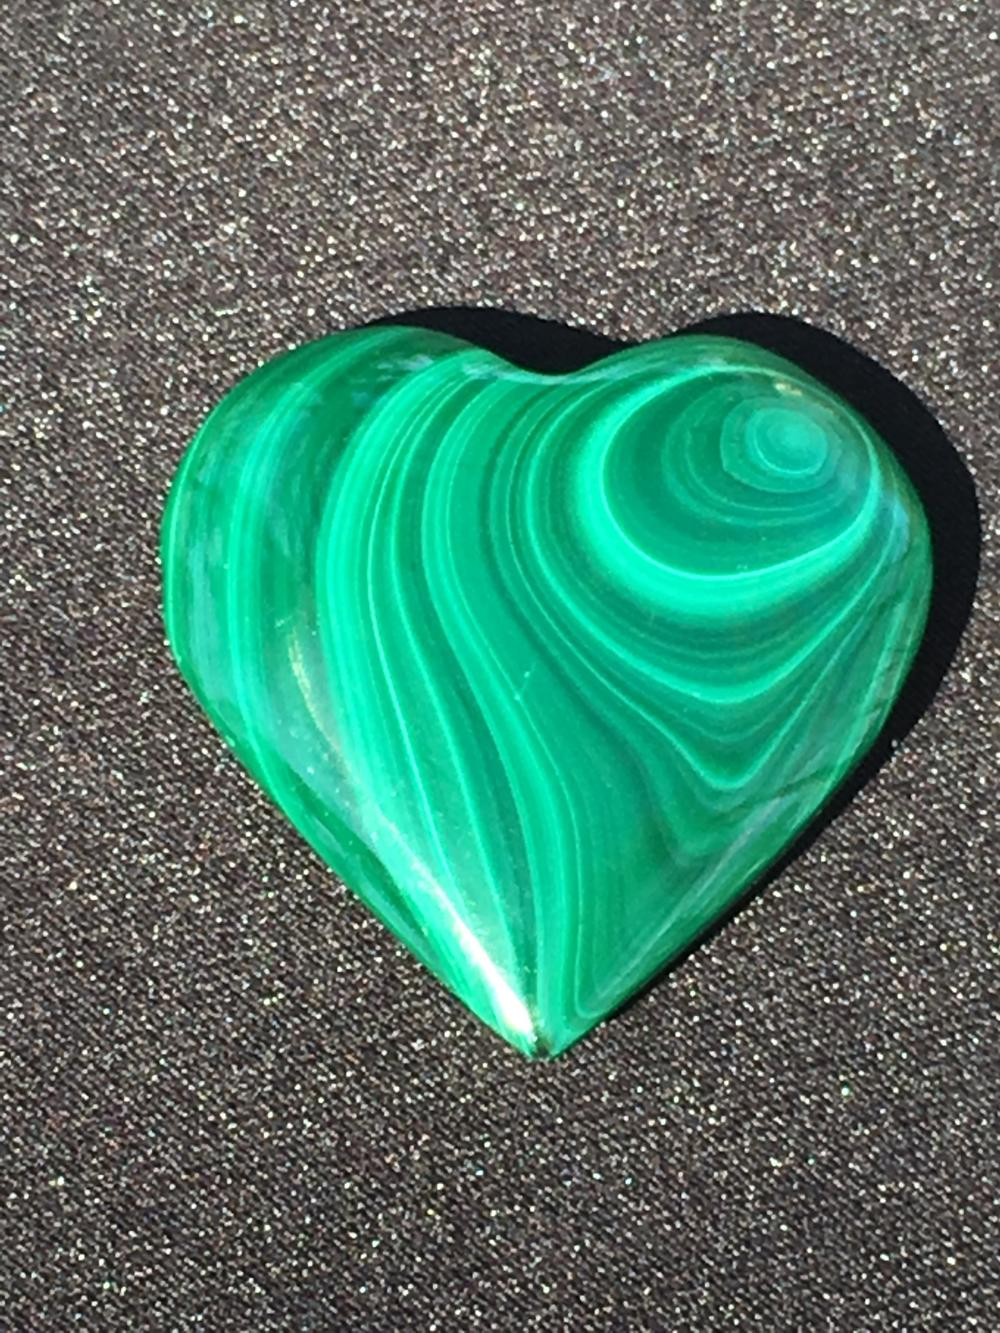 Malachite, Rock, Crystal, Natural, Collectible, Carving, Heart